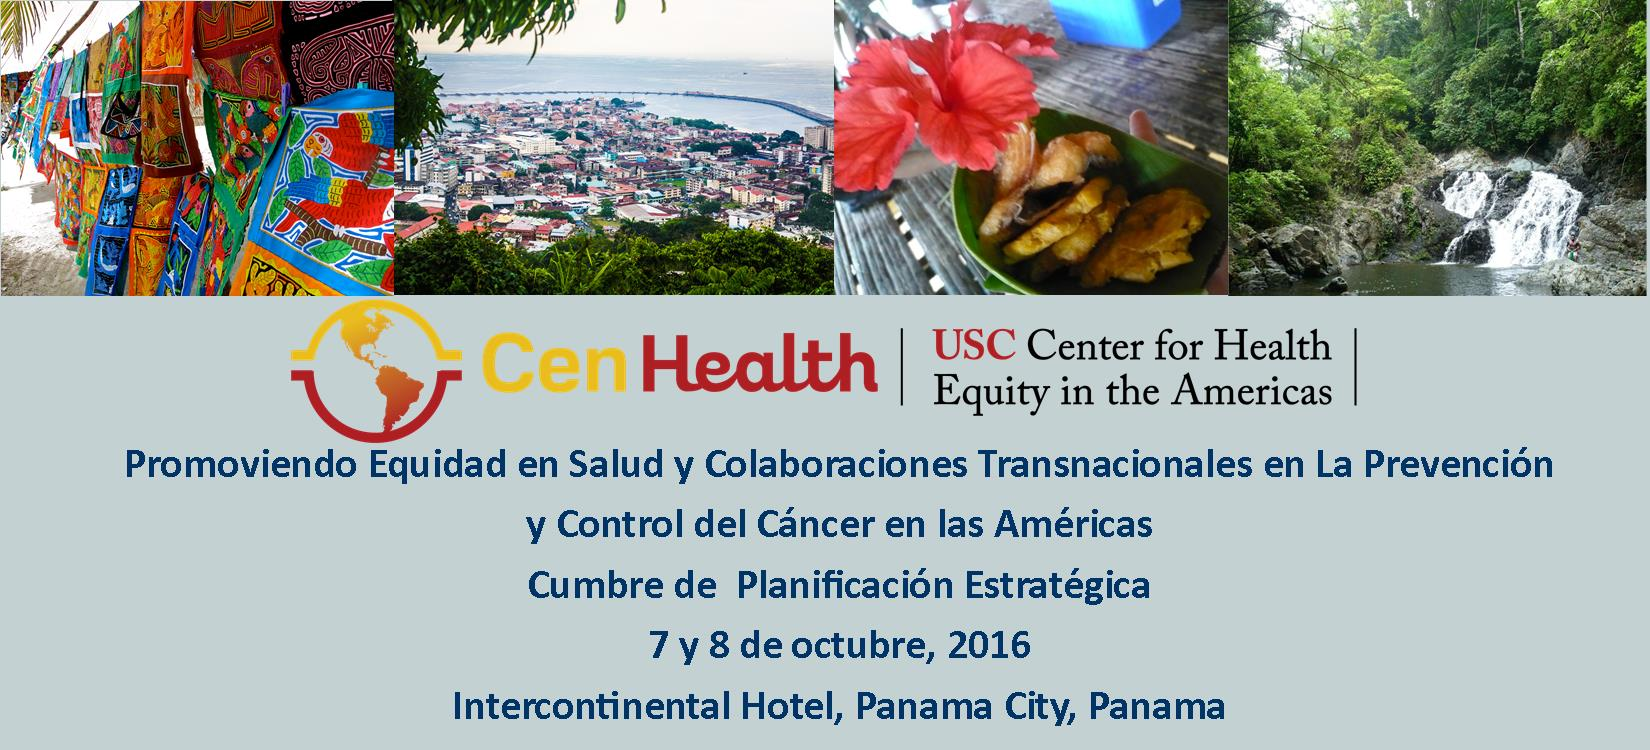 CenHealth Summit Header FINAL-SPANISH